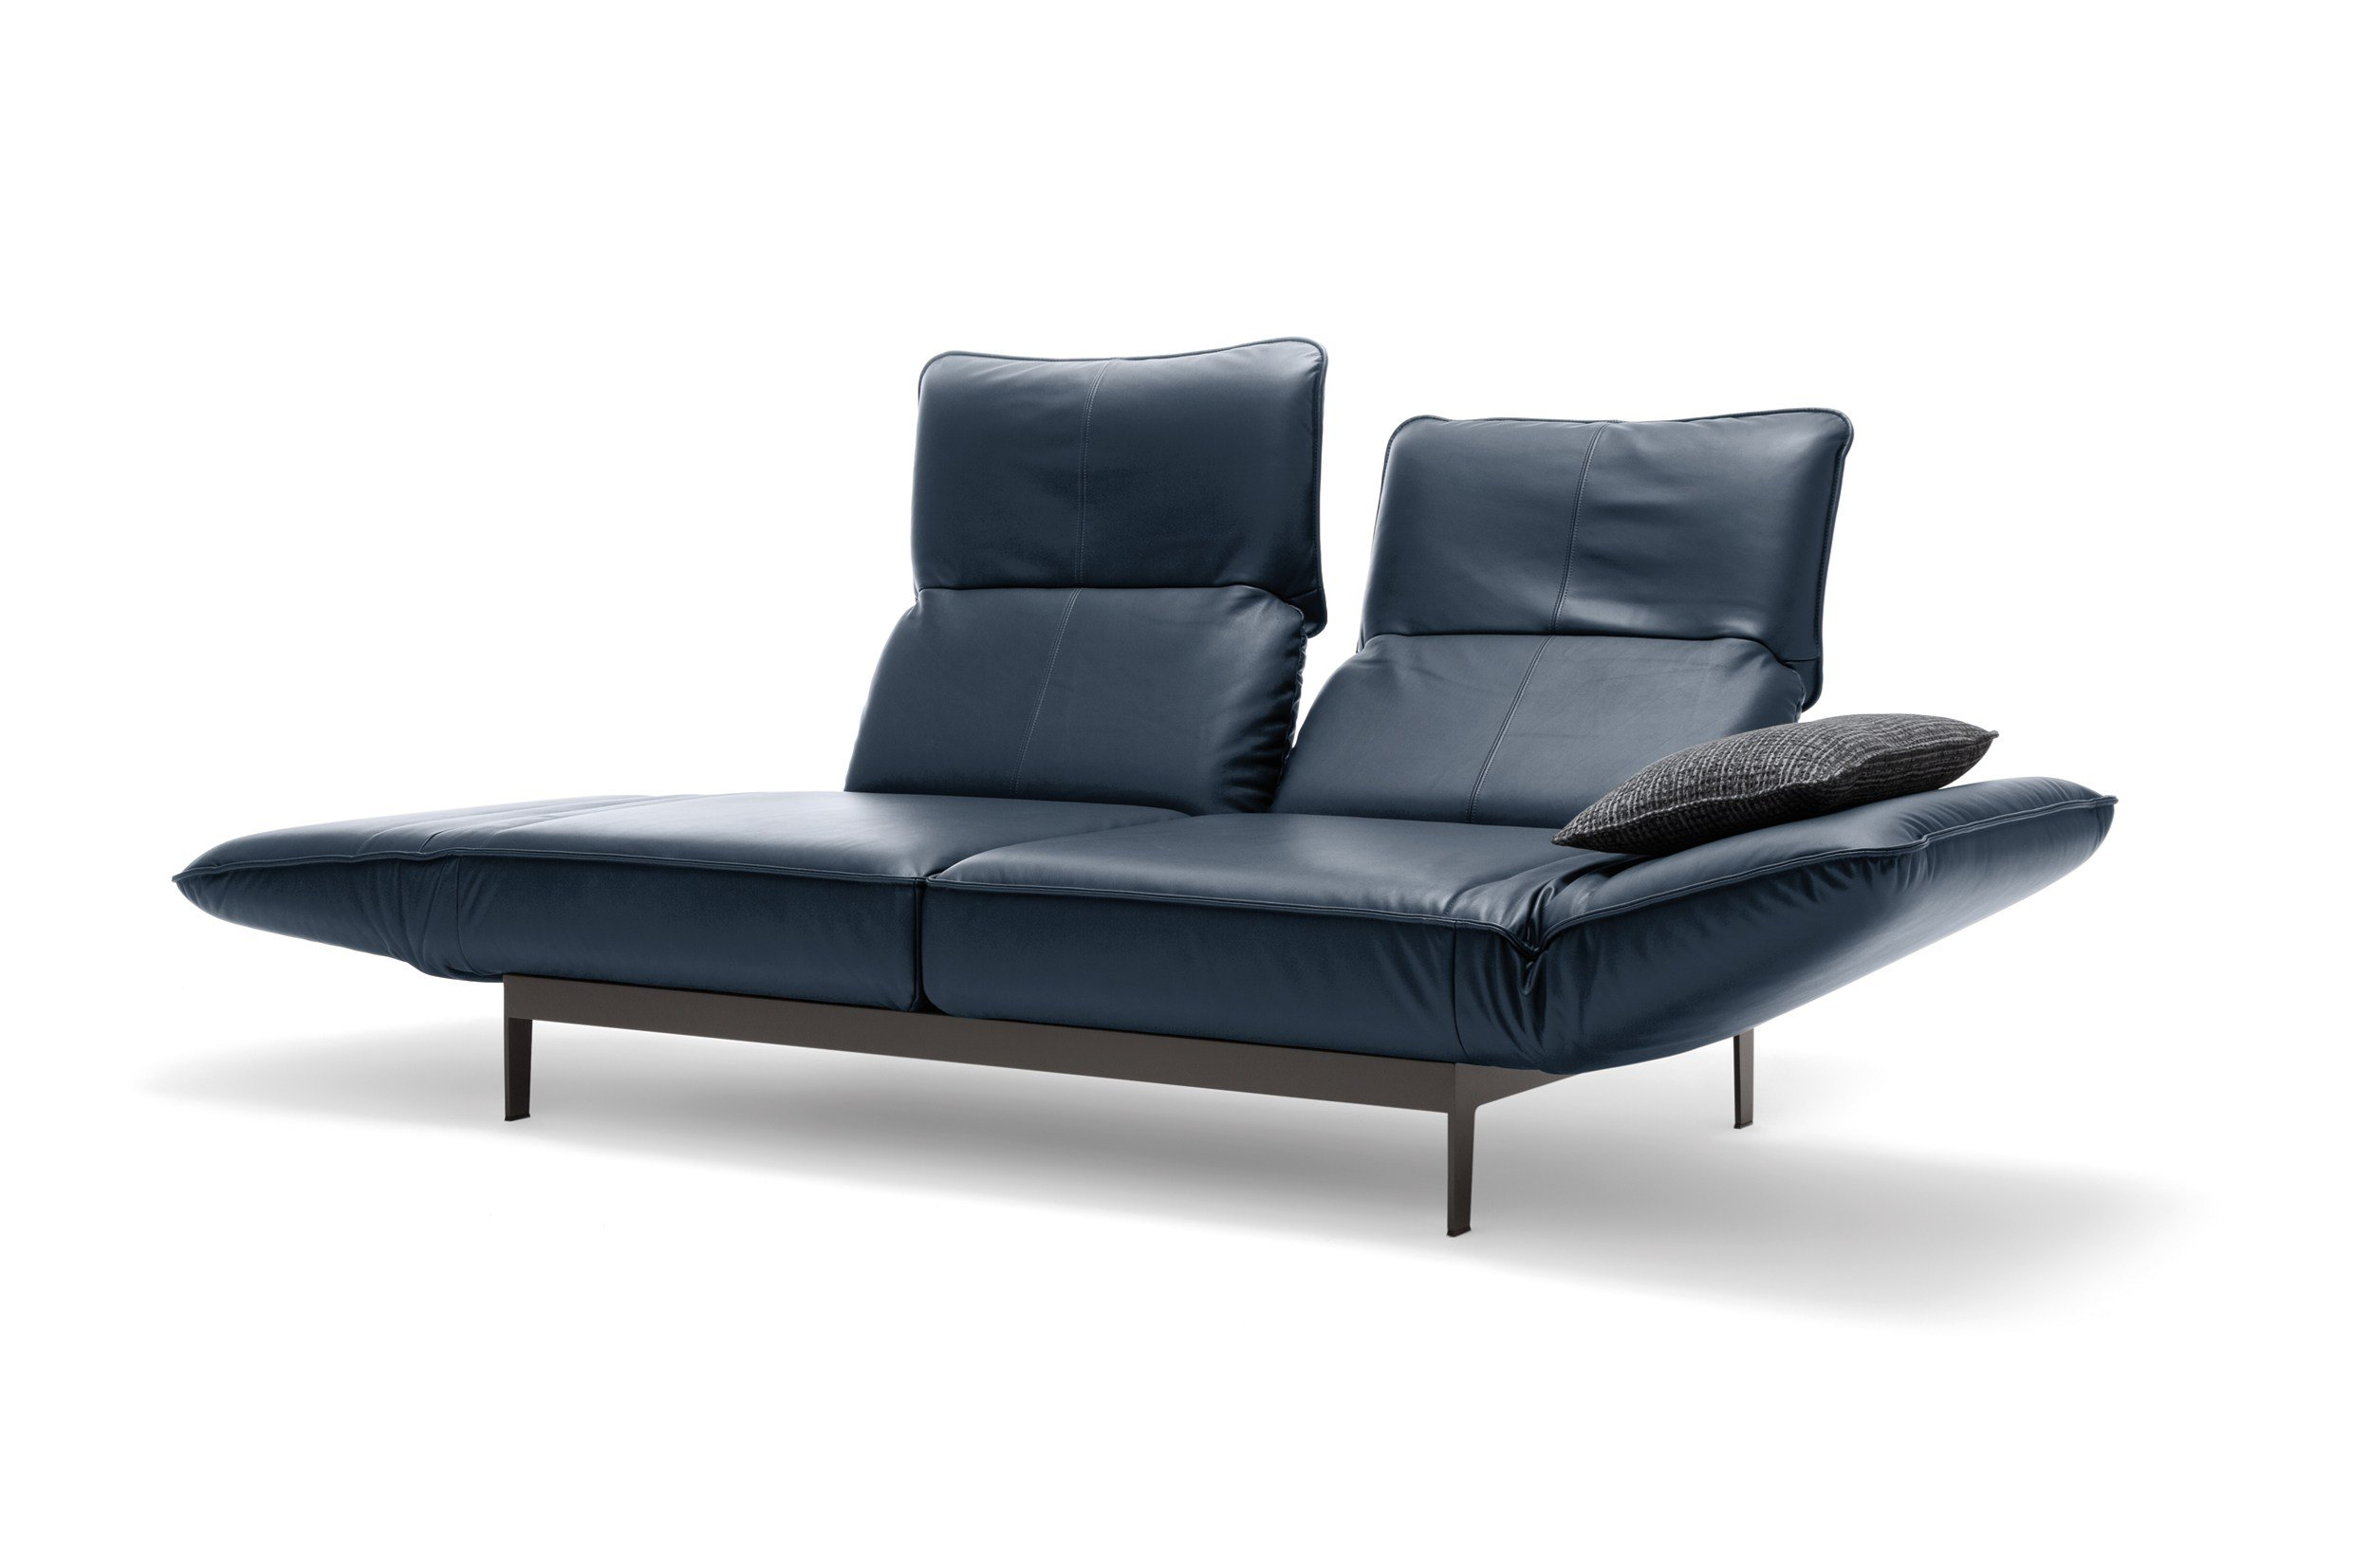 mera leather sofa mera collection by rolf benz design norbert beck. Black Bedroom Furniture Sets. Home Design Ideas